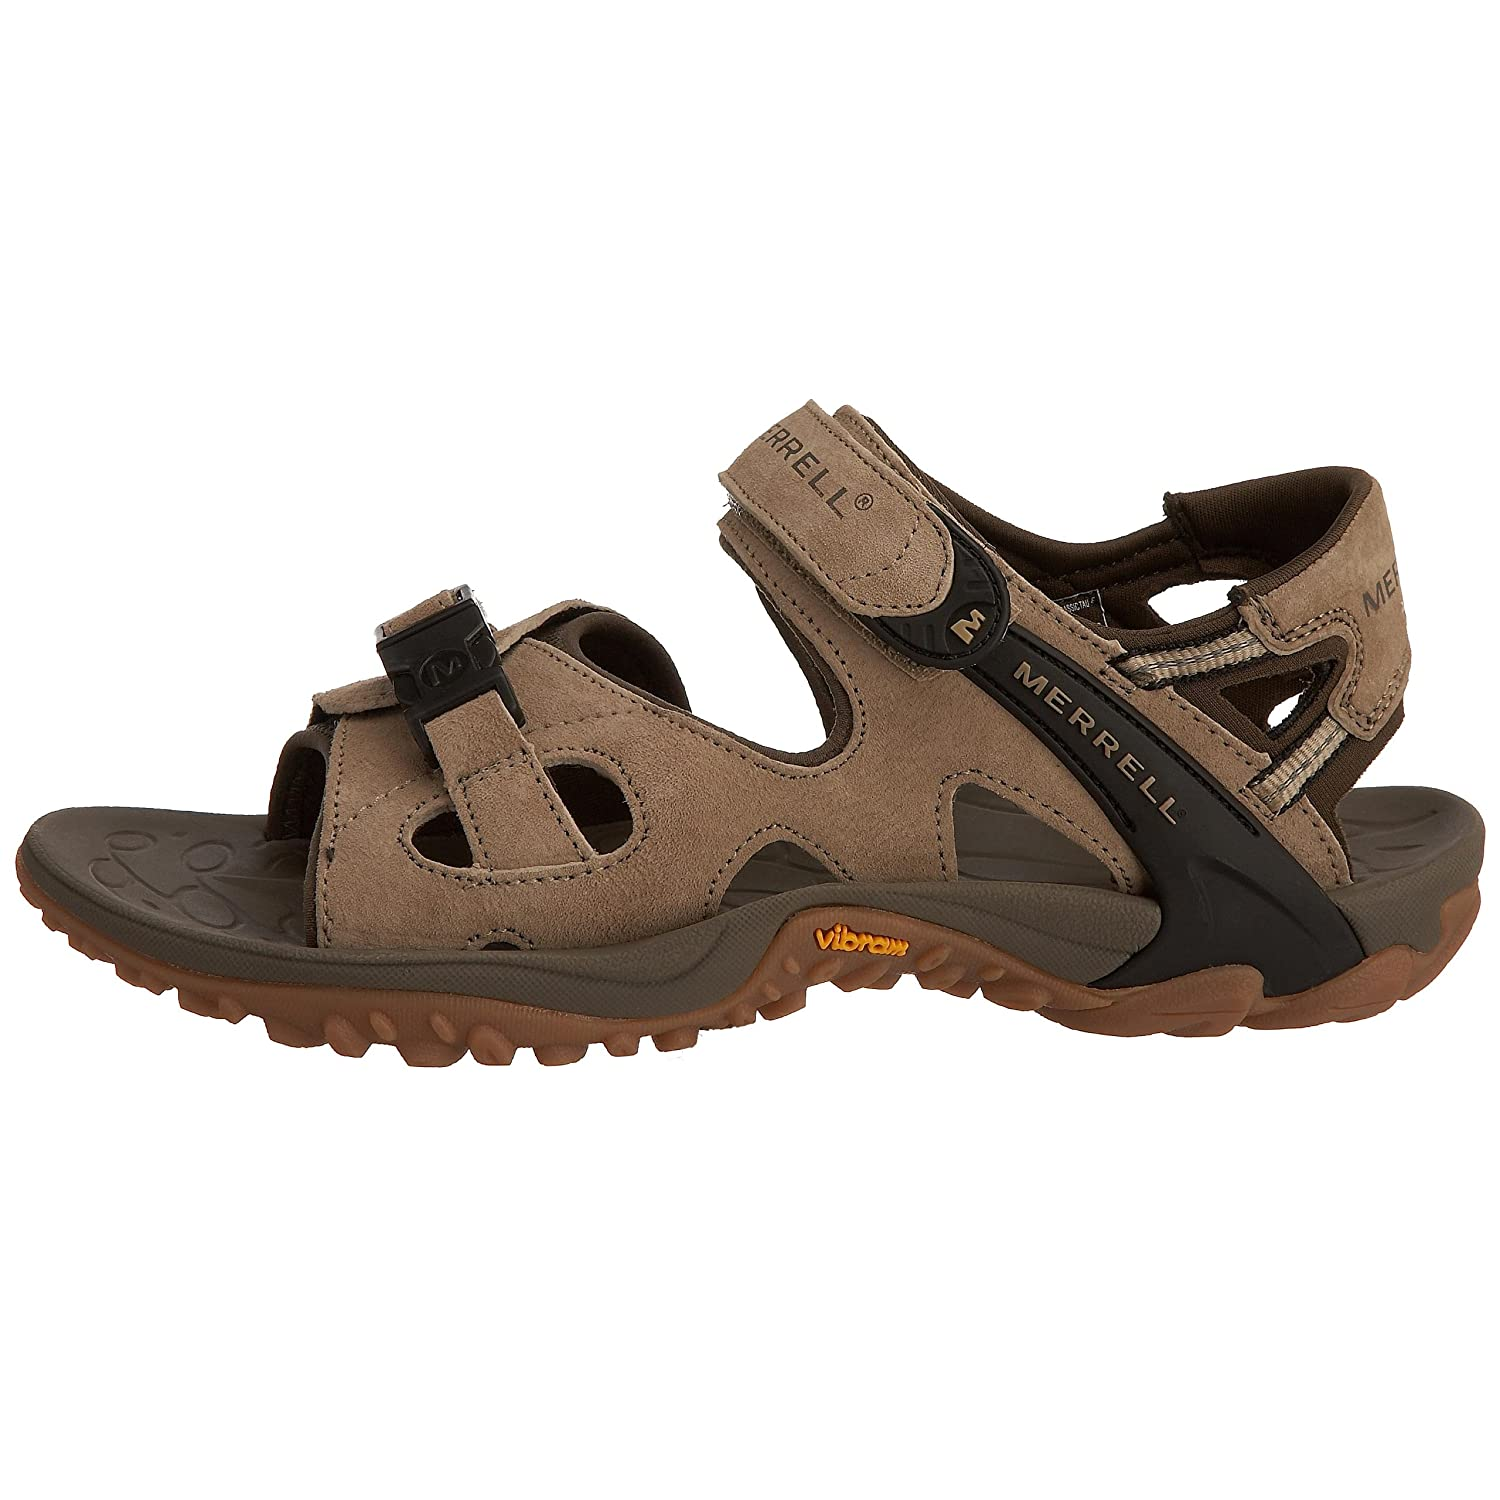 7a7471826a1d Mens Merrell Chameleon II Kahuna - Classic Taupe Size UK 14  Amazon.co.uk   Shoes   Bags